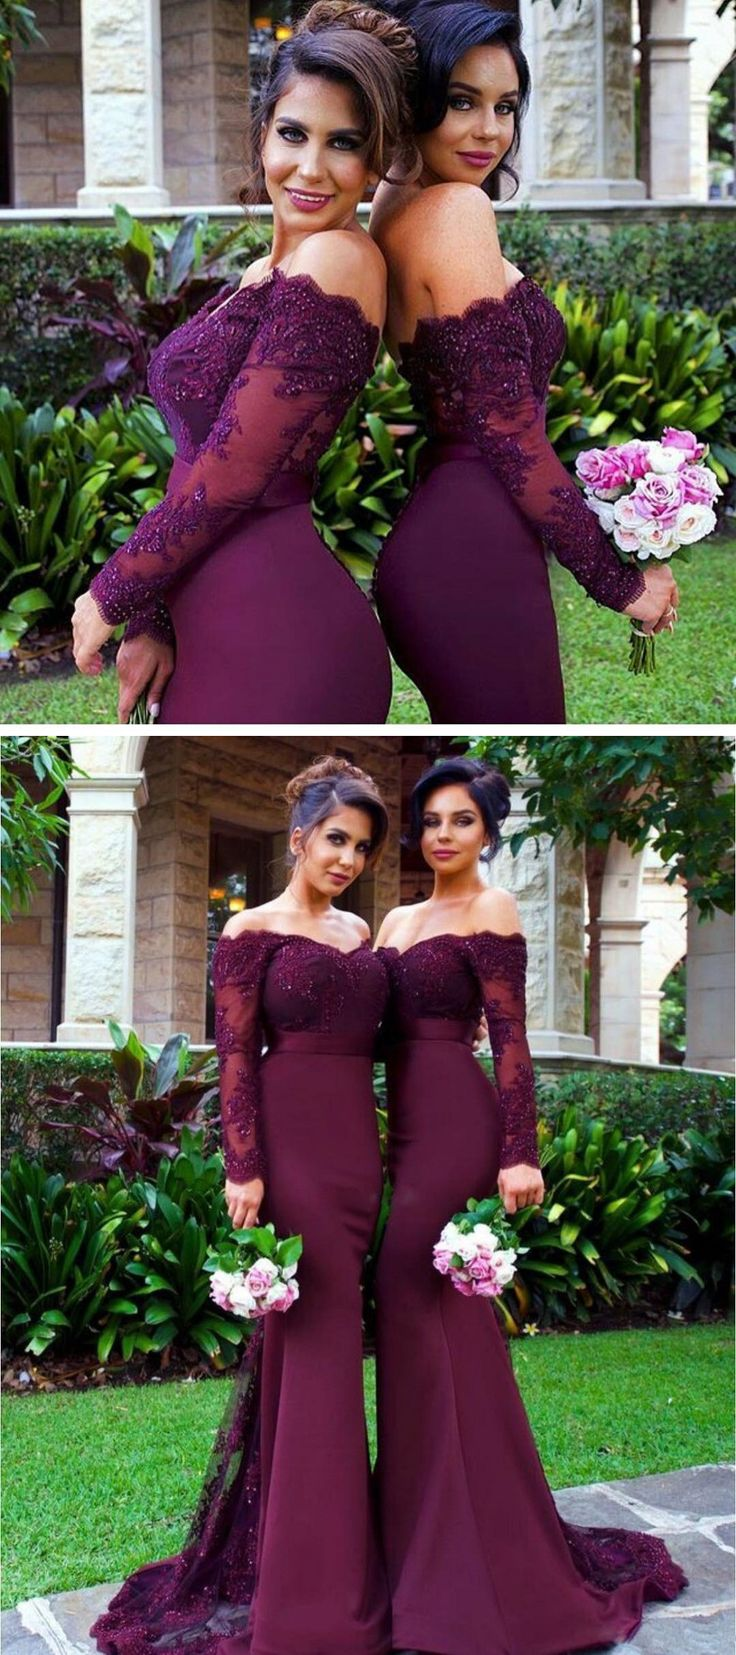 2017 bridesmaid dress, long bridesmaid dress, burgundy bridesmaid dress,maroon bridesmaid dress, mermaid bridesmaid dress